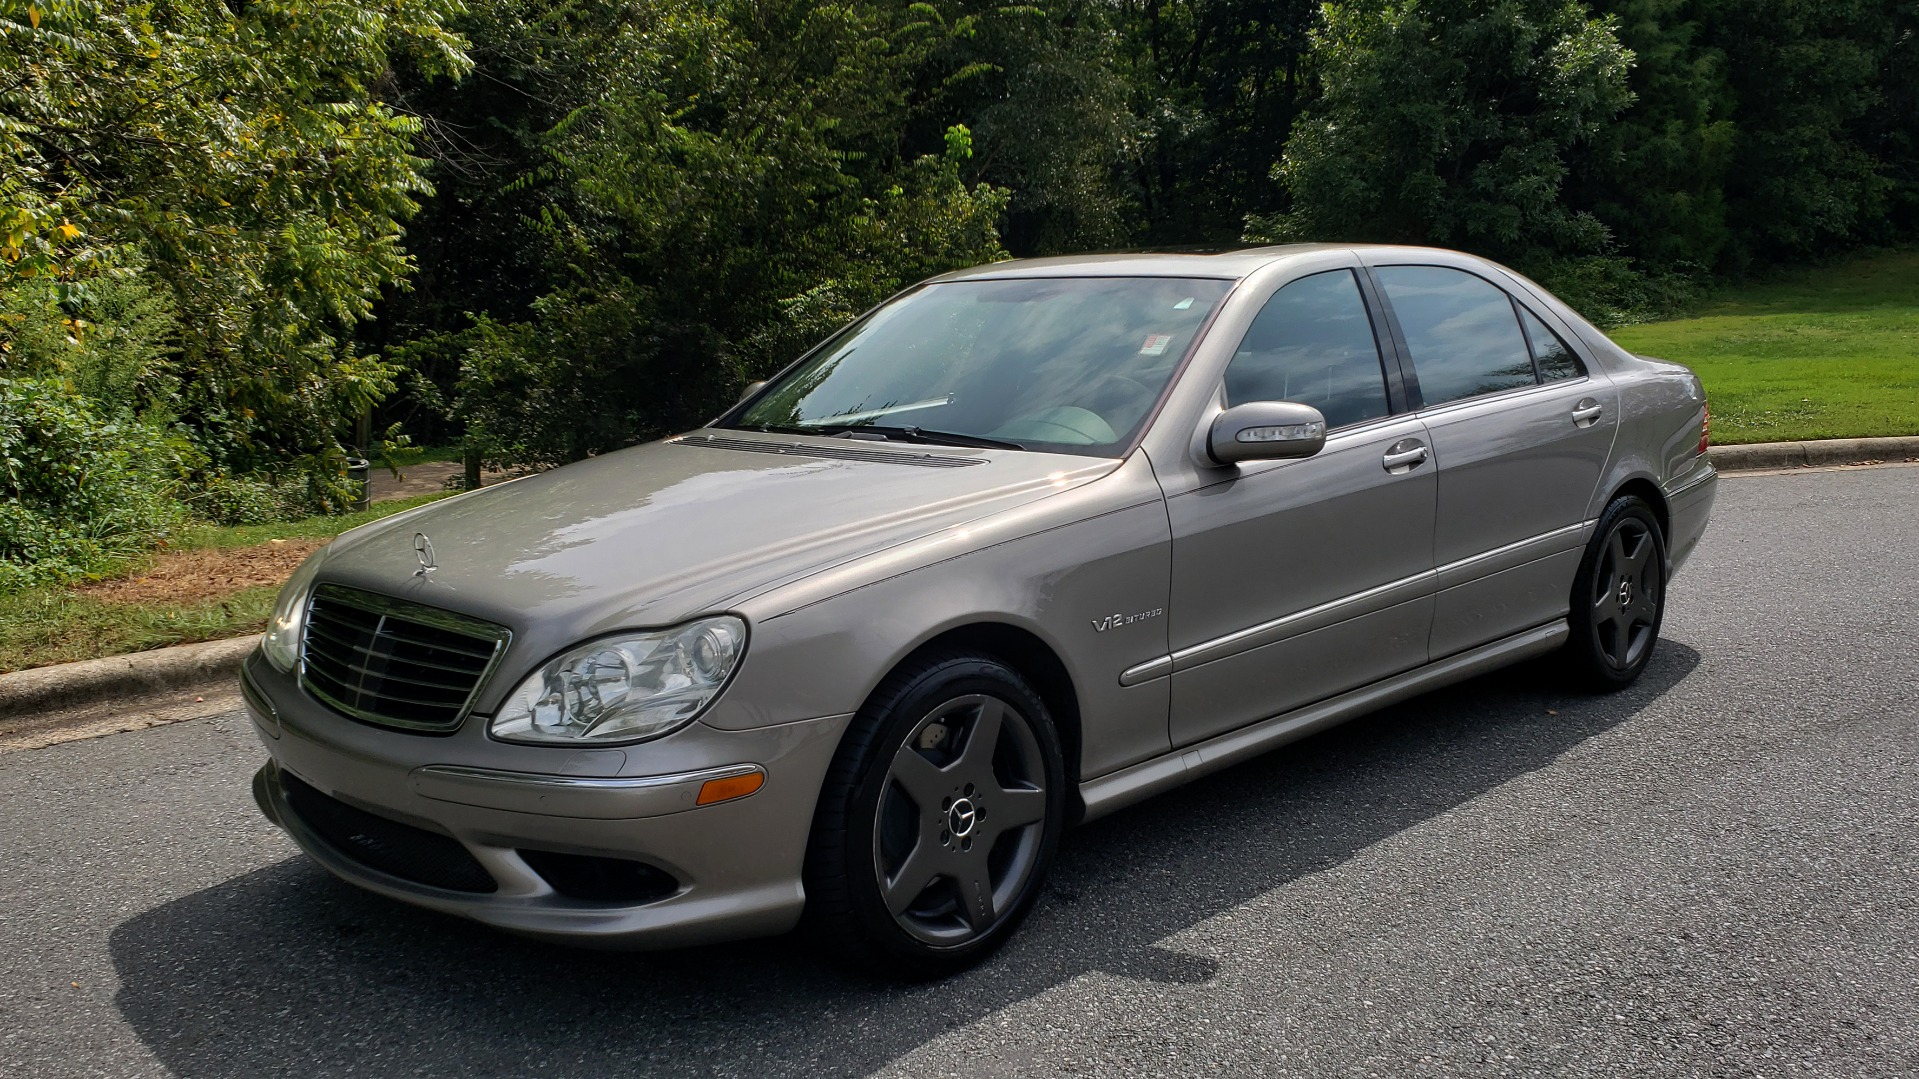 Used 2003 Mercedes-Benz S-CLASS S600 5.5L V12 SEDAN / SUNROOF / KEYLESS-GO / BOSE for sale Sold at Formula Imports in Charlotte NC 28227 1